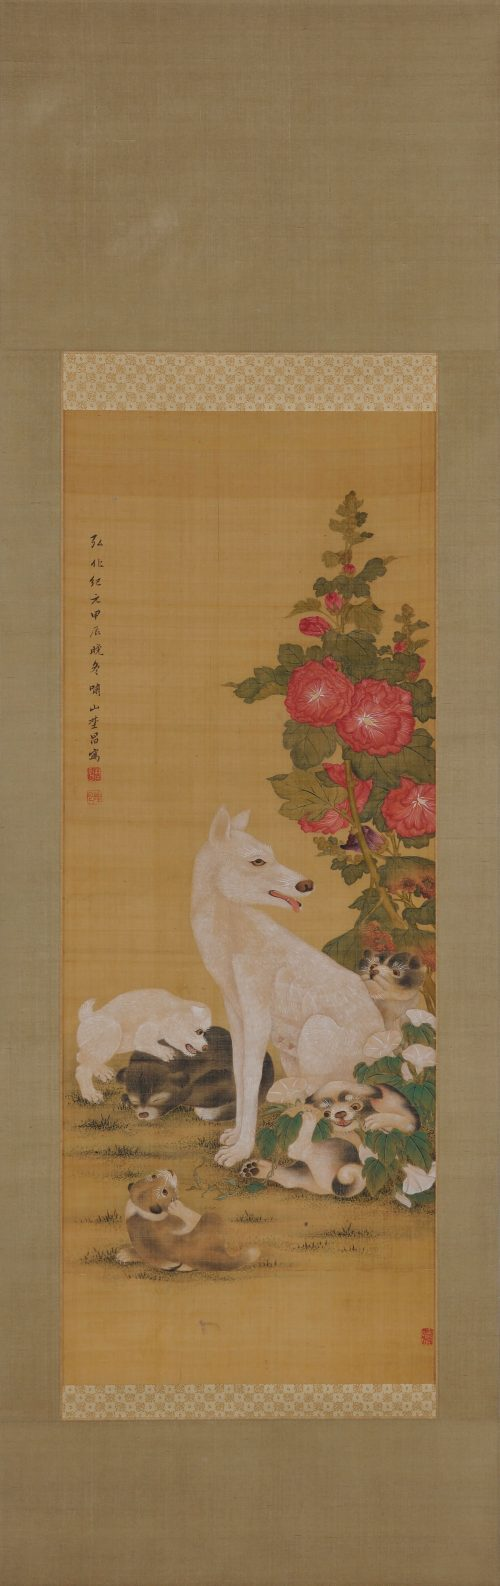 Japanese scroll painting. Mother's breast. Dog and Puppy painting. Full scroll image.